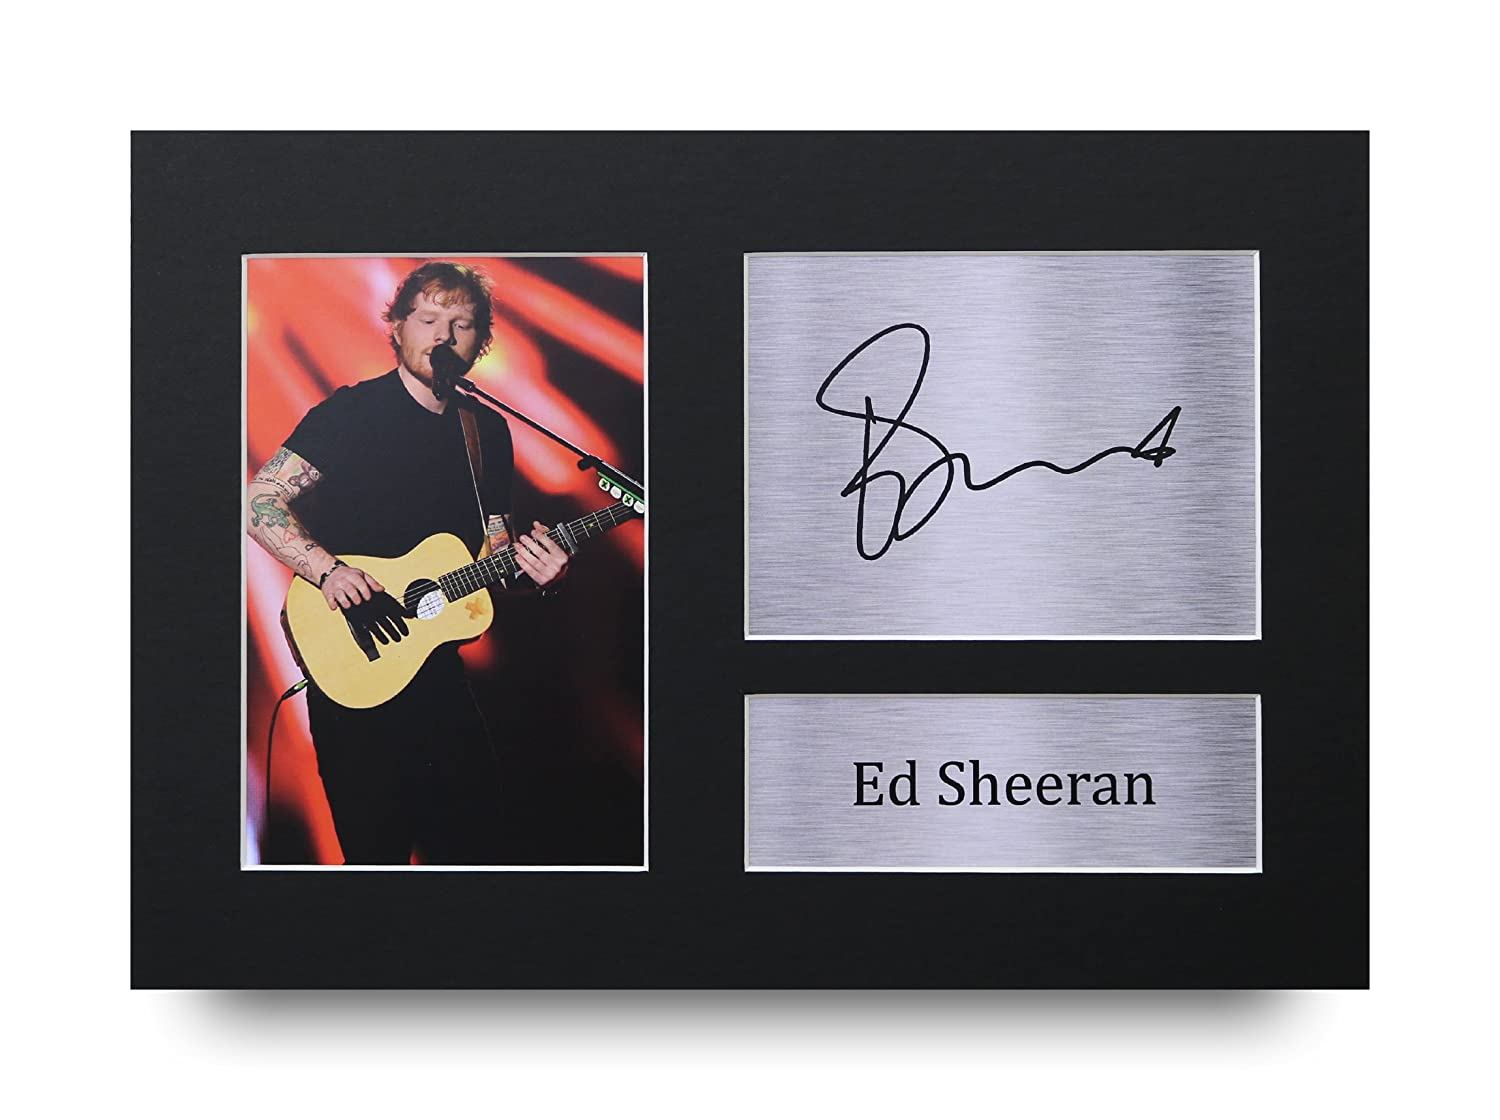 Ed Sheeran Signed A4 Printed Autograph Music Print Photo Picture Display - Great Gift Idea HWC Trading